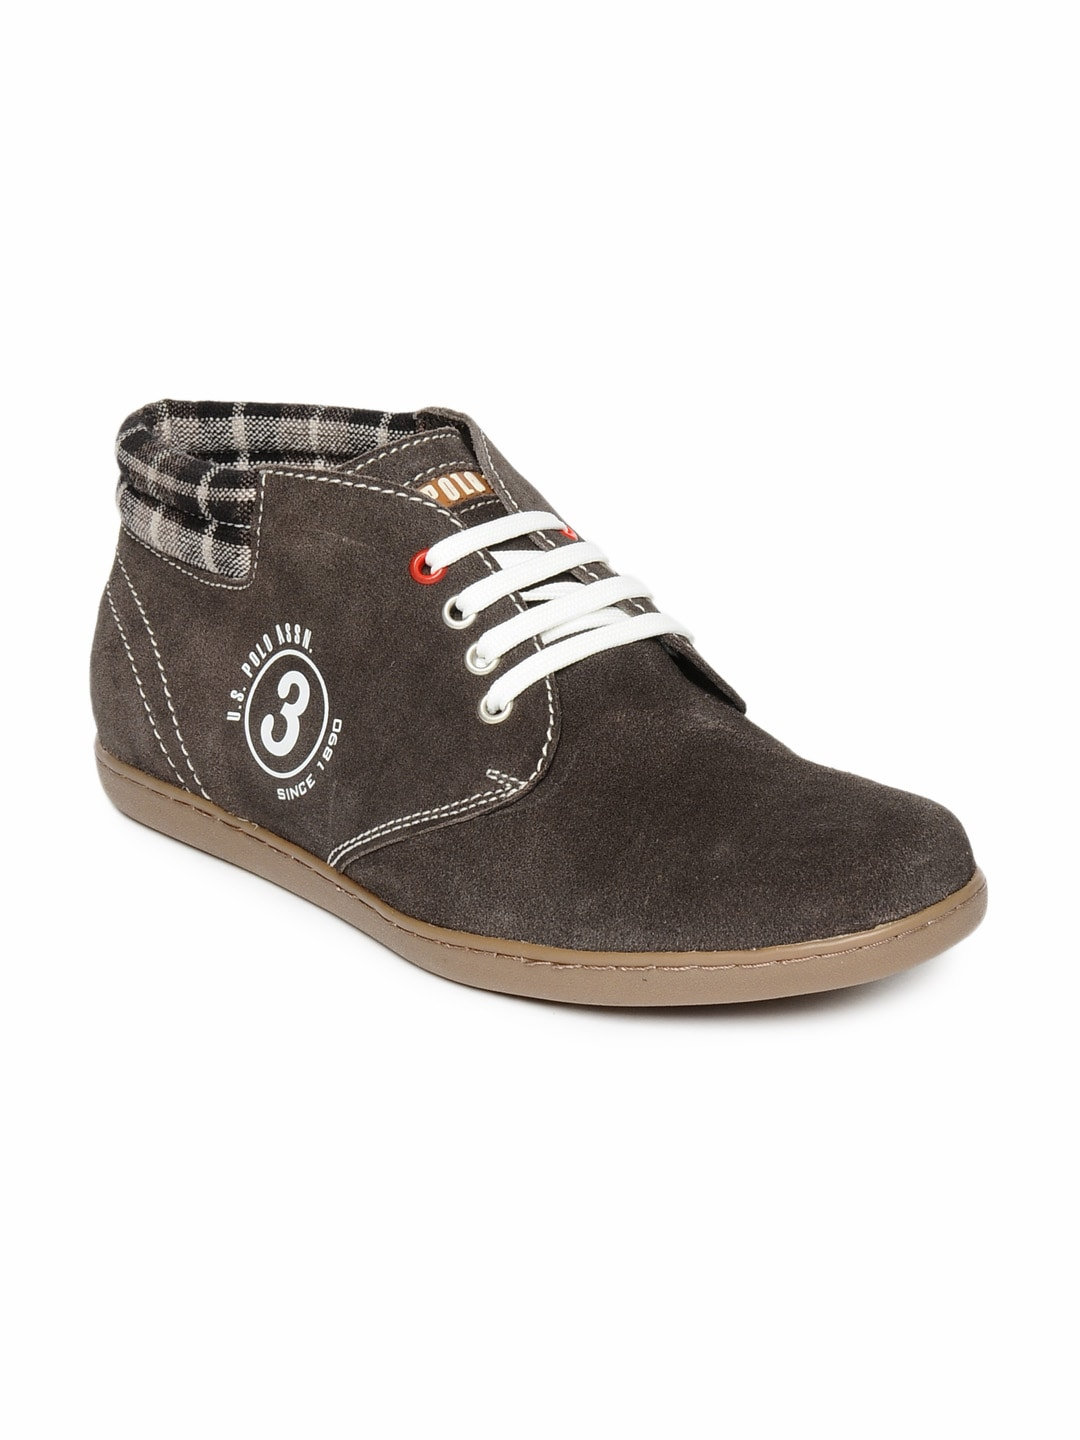 buy u s polo assn brown casual shoe 288 footwear